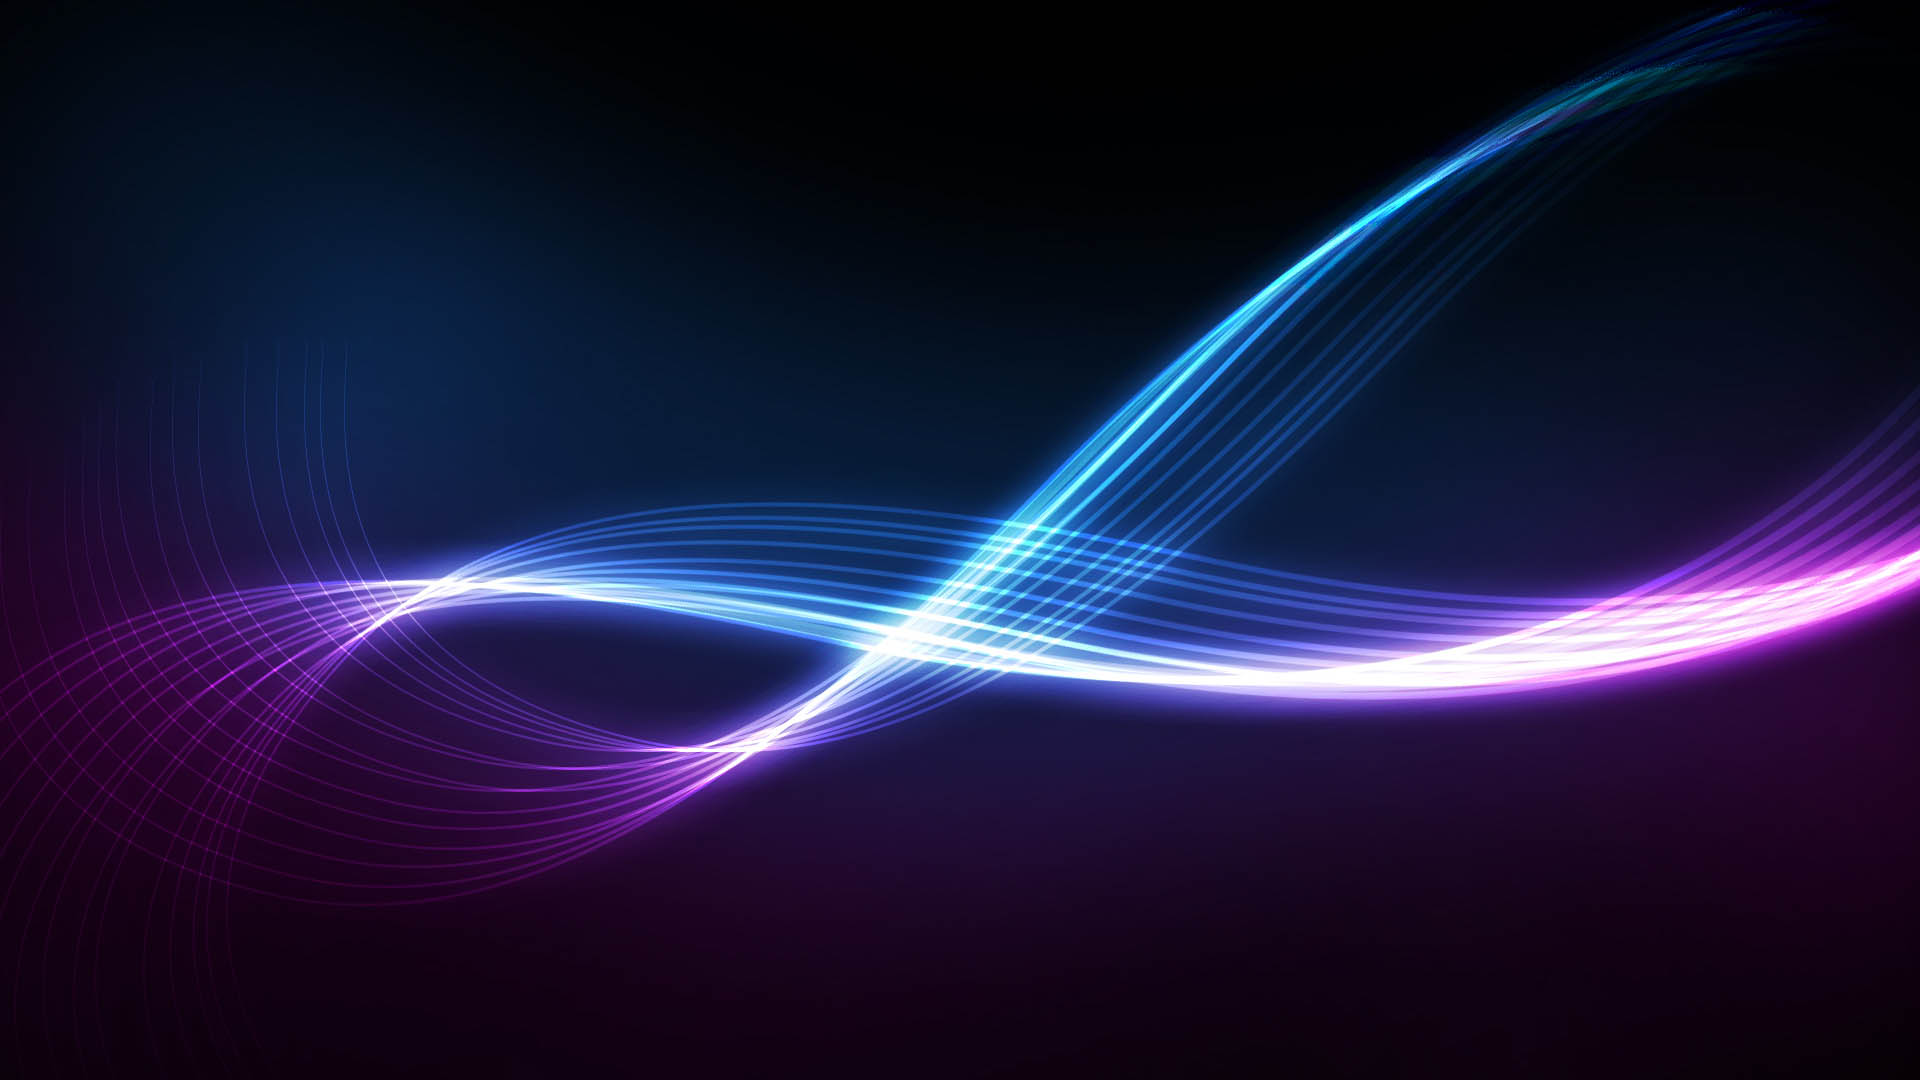 Abstract 1080p   Wallpaper High Definition High Quality Widescreen 1920x1080